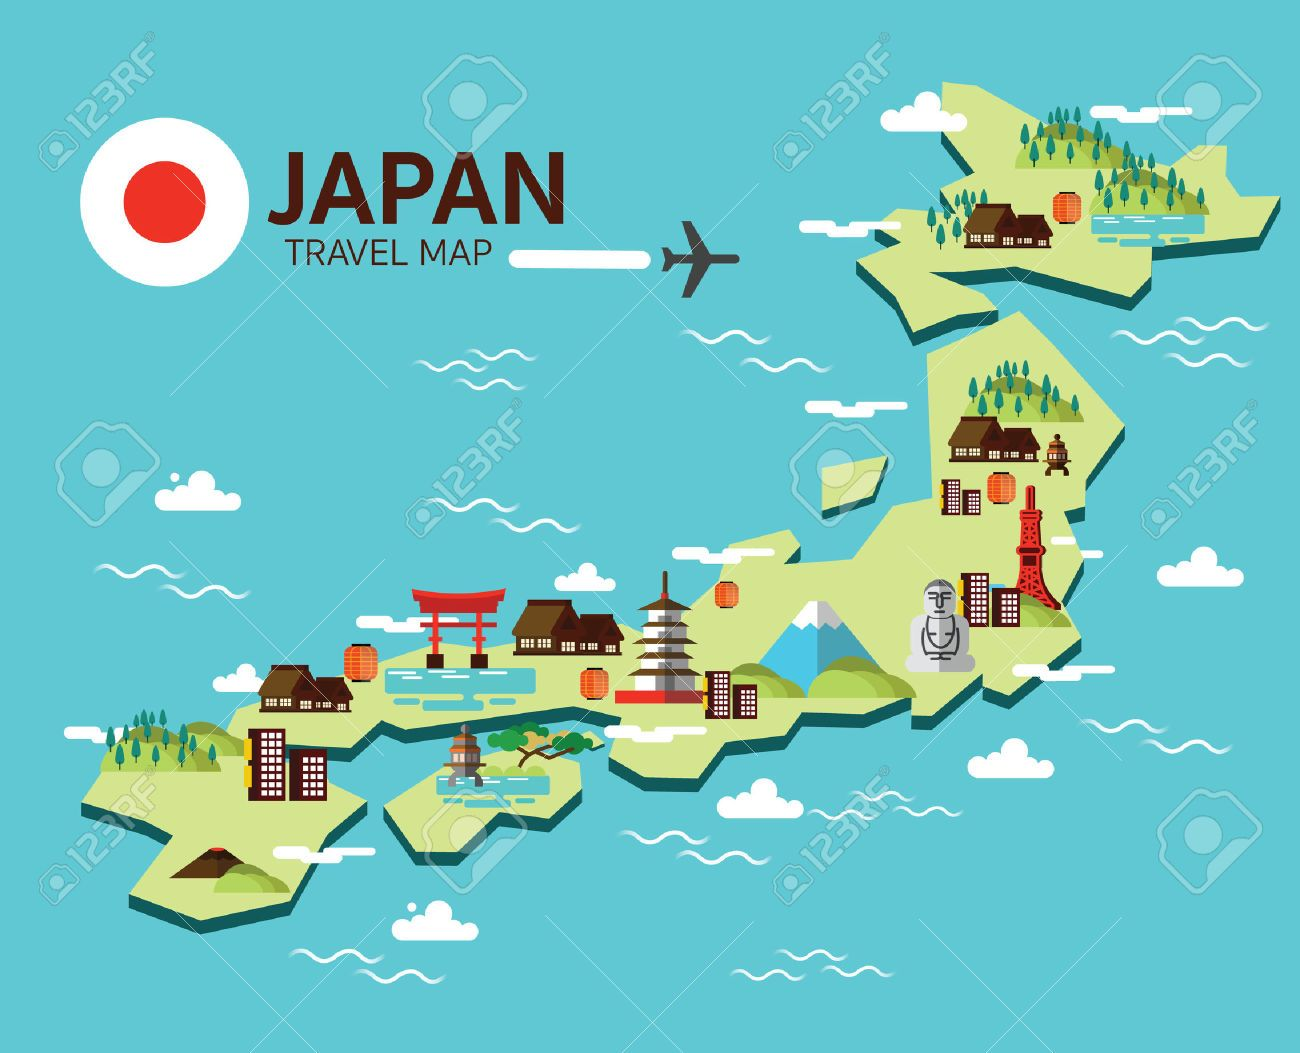 Travel map clipart japan cliparts stock vector and royalty free travel map clipart japan cliparts stock vector and royalty free landmark flat design elements icons illustration gumiabroncs Choice Image